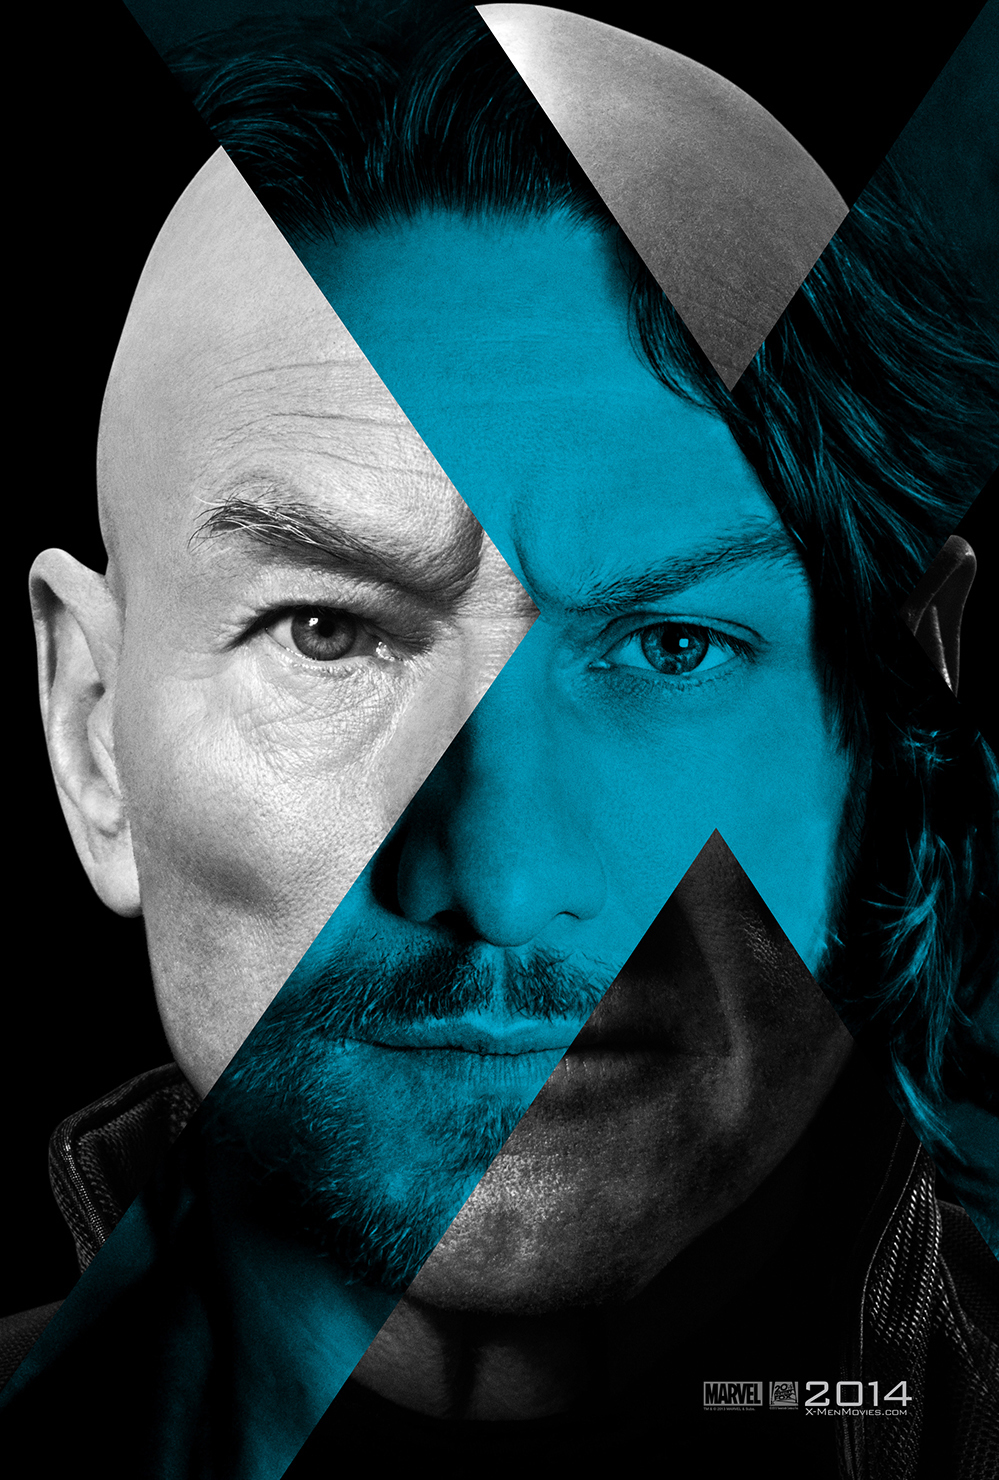 xavier poster for x-men: days of future past